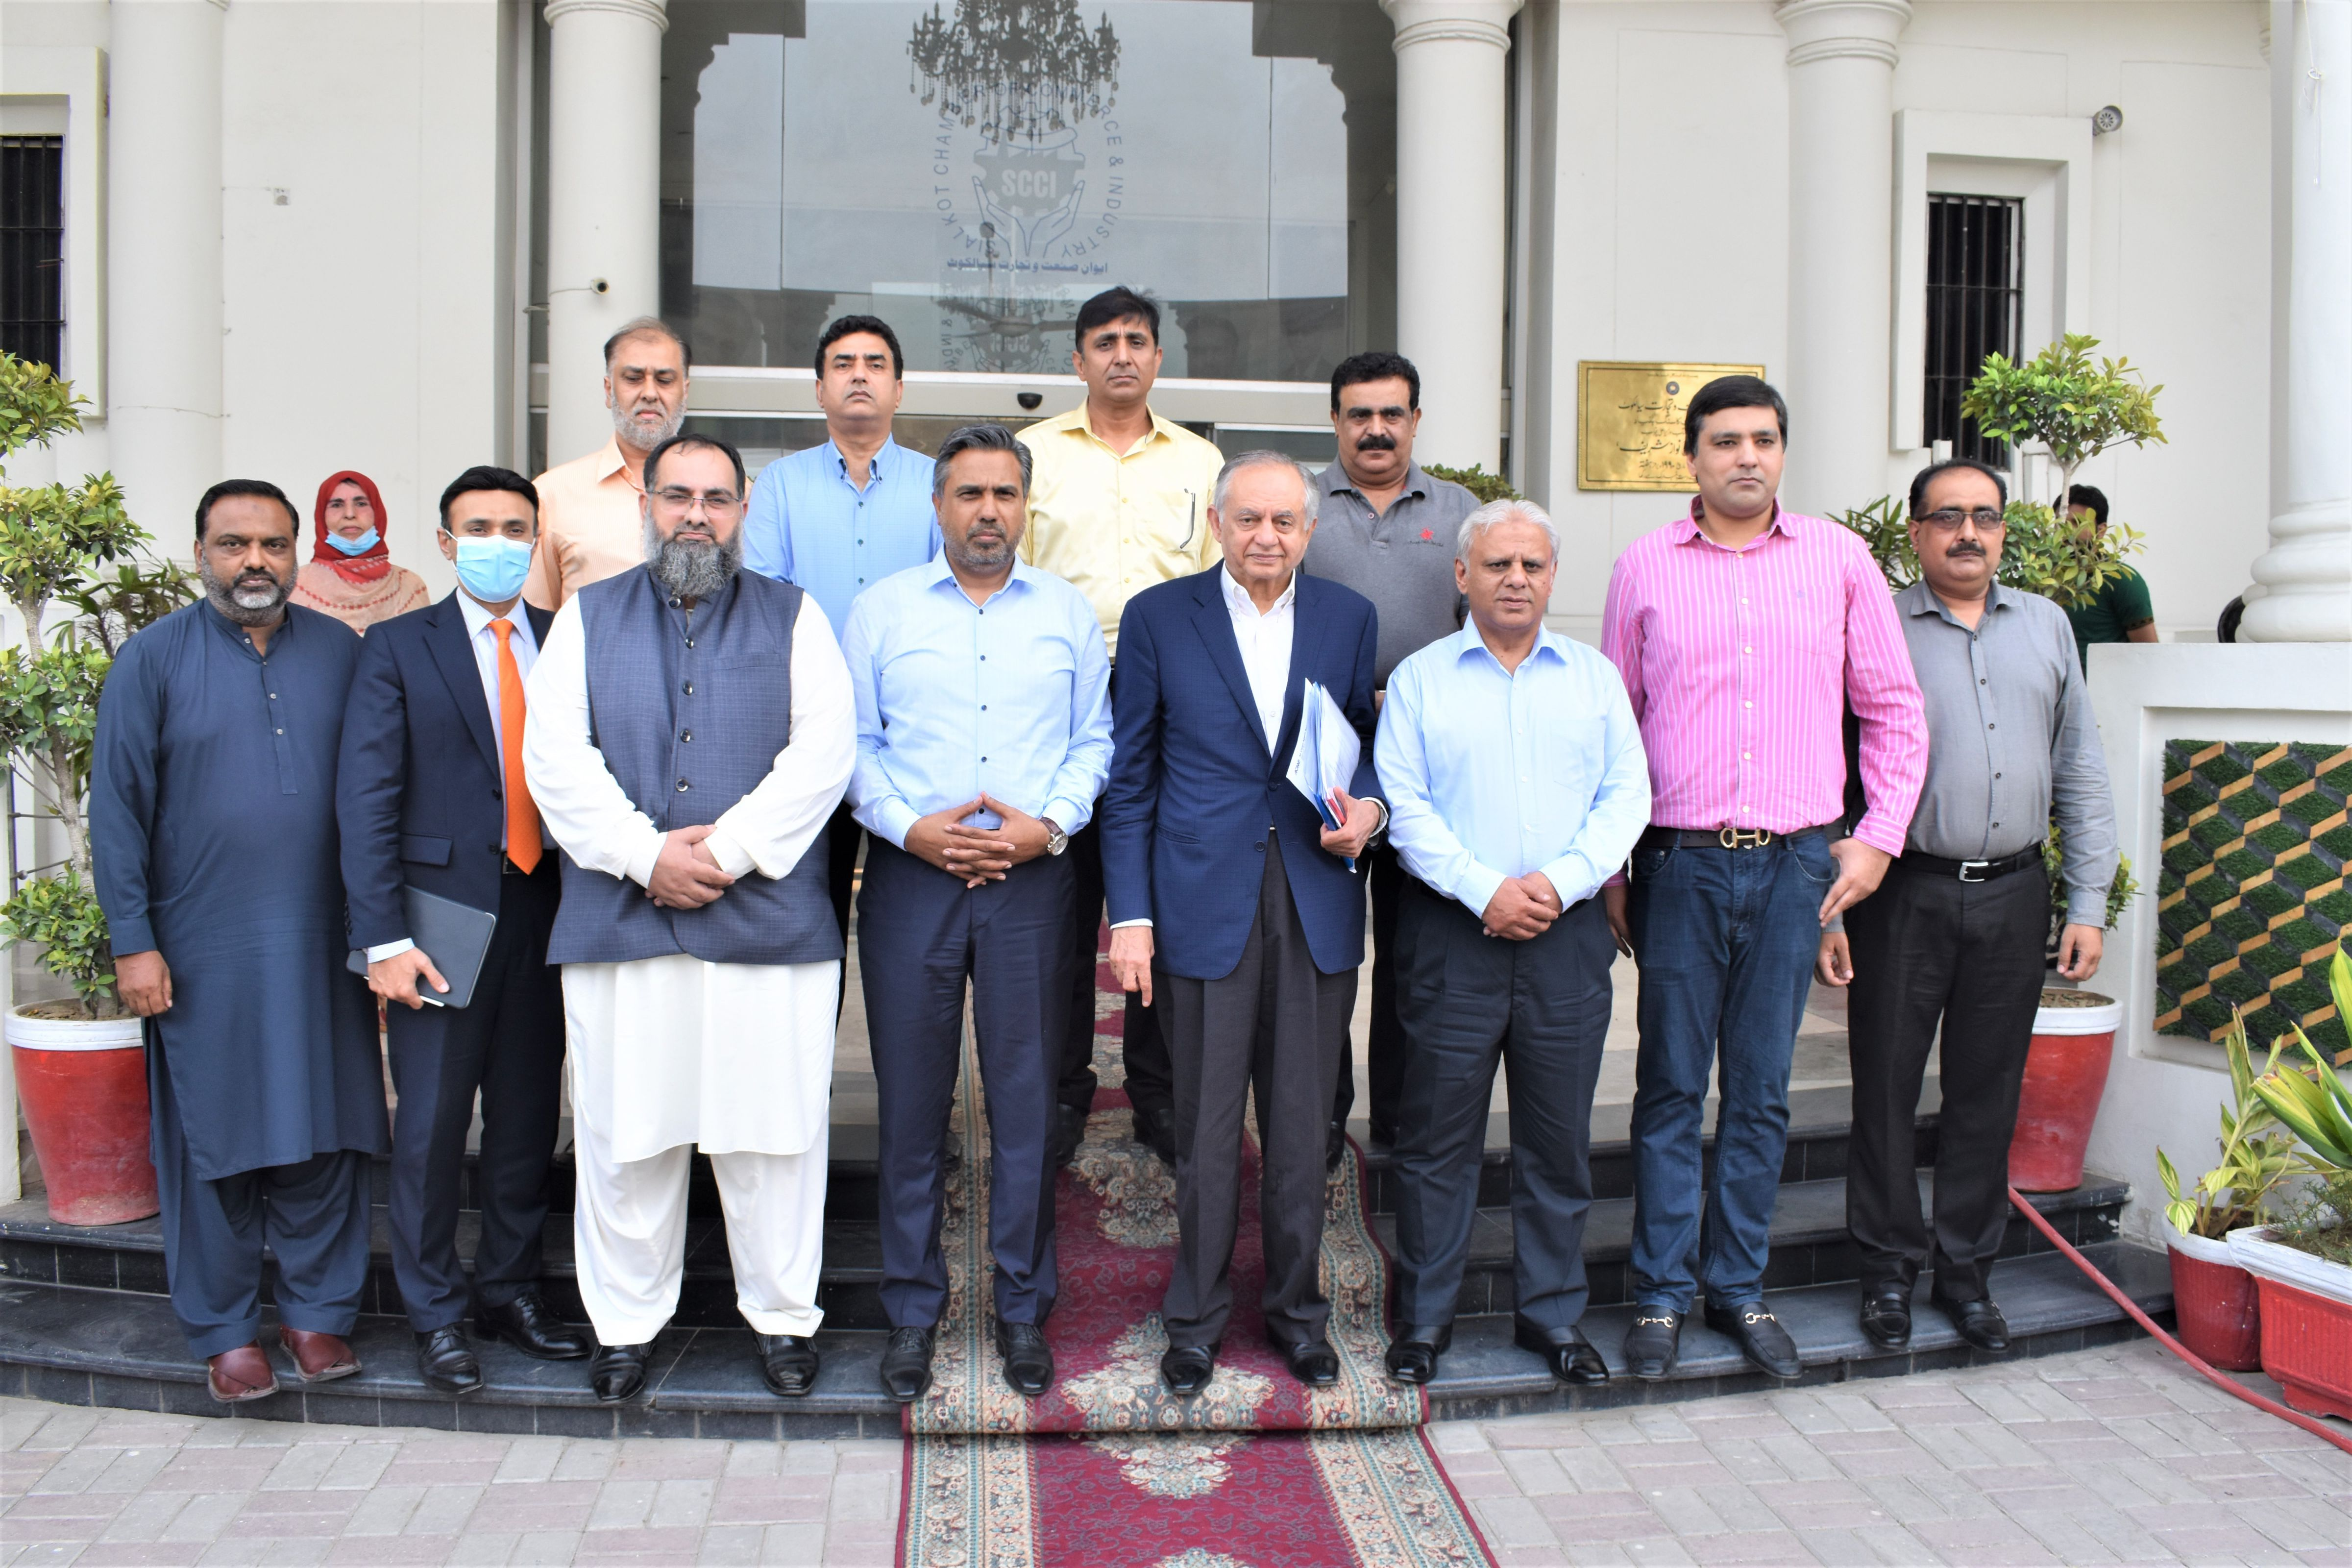 On July 17, 2021, Honorable Mr. Abdul Razak Dawood, Advisor to PM for Commerce, Textile, Industry & Production, and Investment of Pakistan visited Sialkot Chamber of Commerce & Industry to interact with the Business Community of Sialkot.   Mr. Qaisar Iqbal Baryar, President, Mr. Khuram Aslam, Senior Vice President and Mr. Ansar Aziz Puri, Vice President SCCI welcomed the Honorable Guest.   Mr. Qaisar Iqbal Baryar lauded the efforts of Mr. Dawood and discussed various issues of Industry.    Mr. Abdul Razak Dawood appreciated Sialkot Business Community for their contribution in promoting the exports of the region.  Mr. Dawood also interacted with the business community and assured his maximum support in resolution of issues of Exporters.